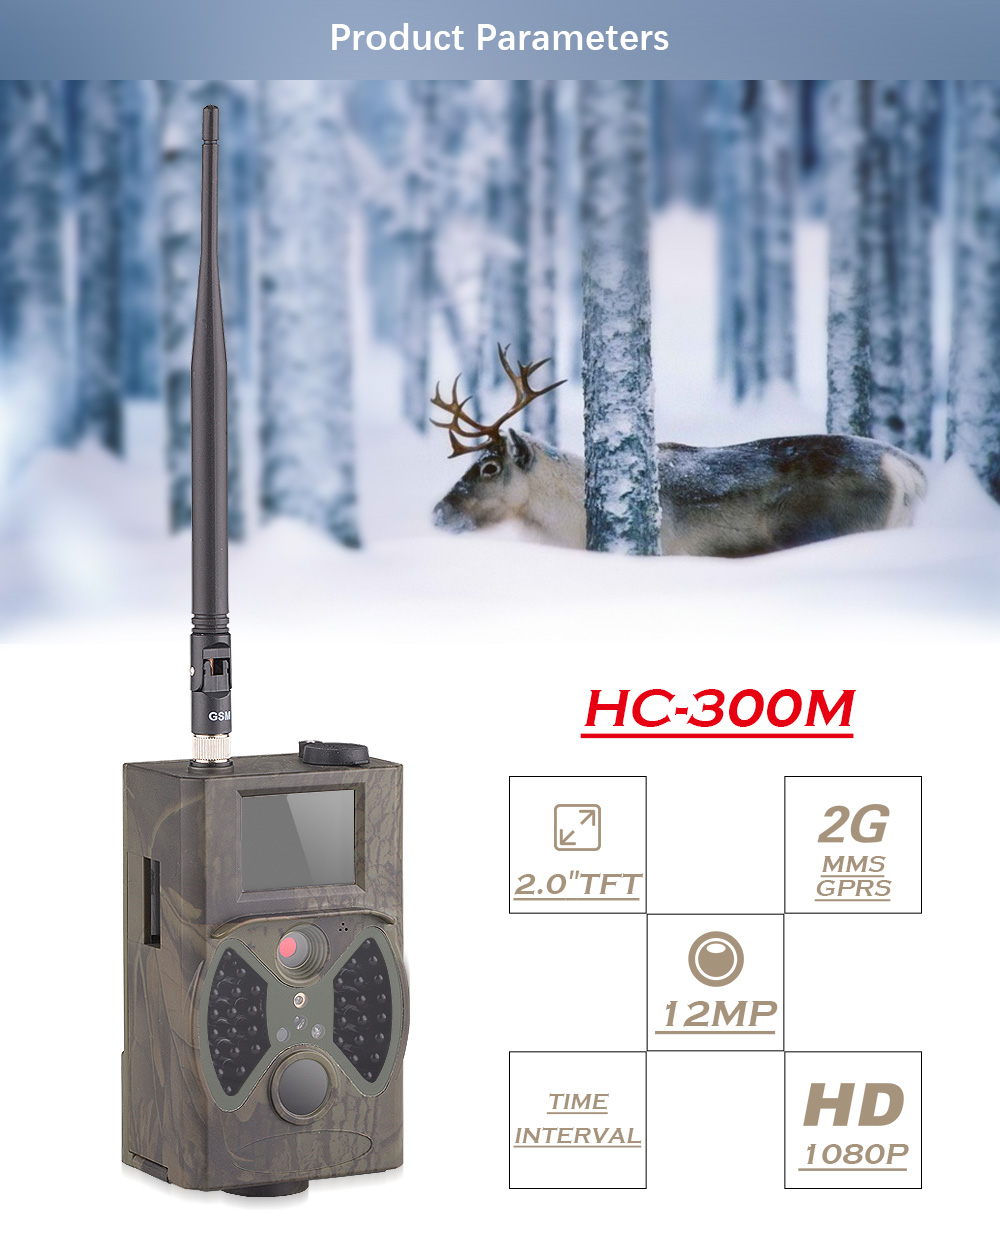 HC 300M Deer Cameras 12MP GSM MMS GPRS SMS Control Hunting Camera HC300M with 36 units Infrared LEDS Motion Detection HC-300M (11)